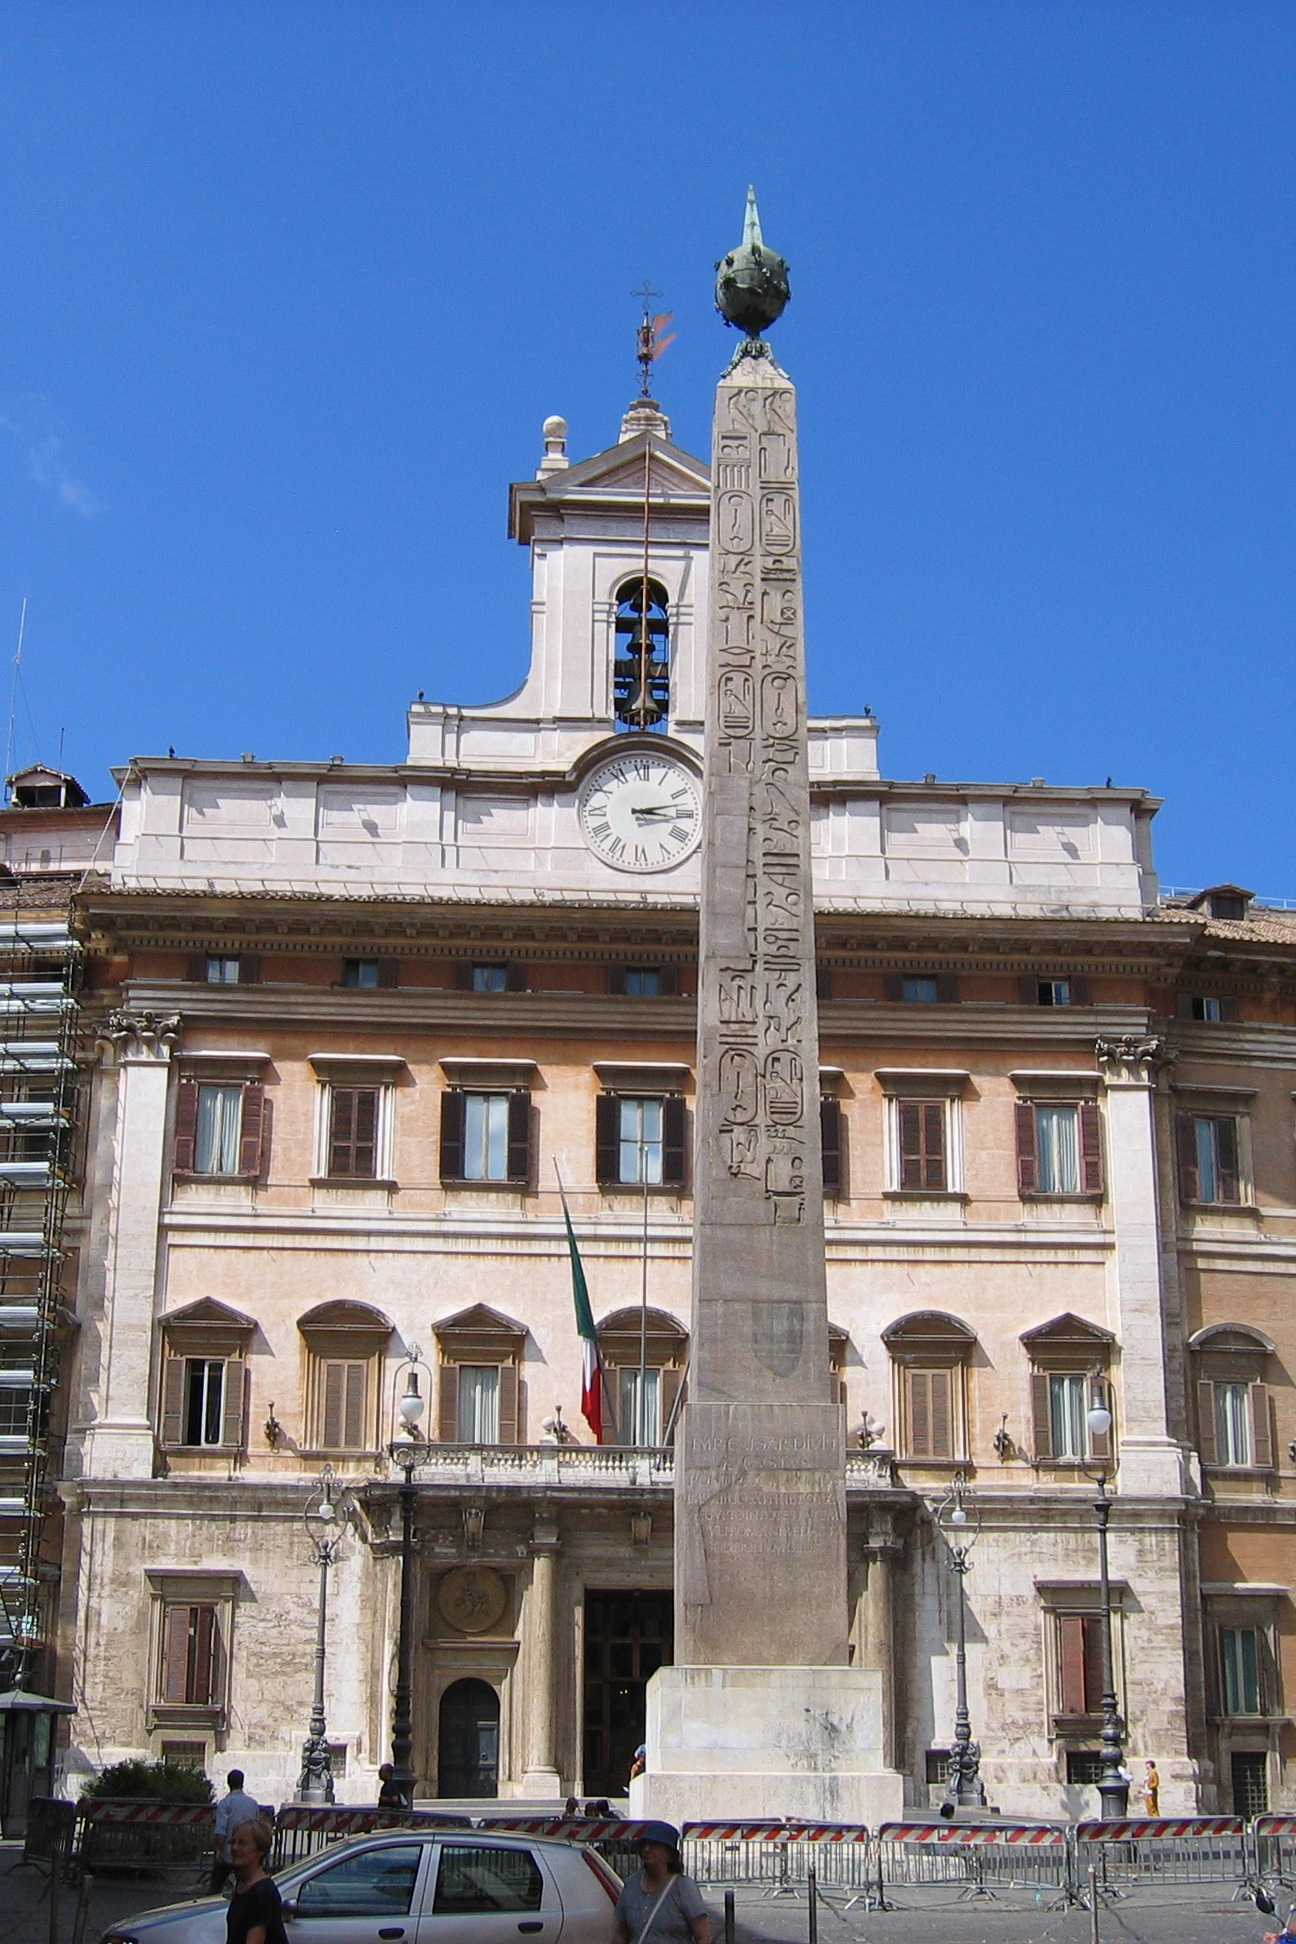 Obelisks rome and equestrian statue on pinterest for Piazza montecitorio 12